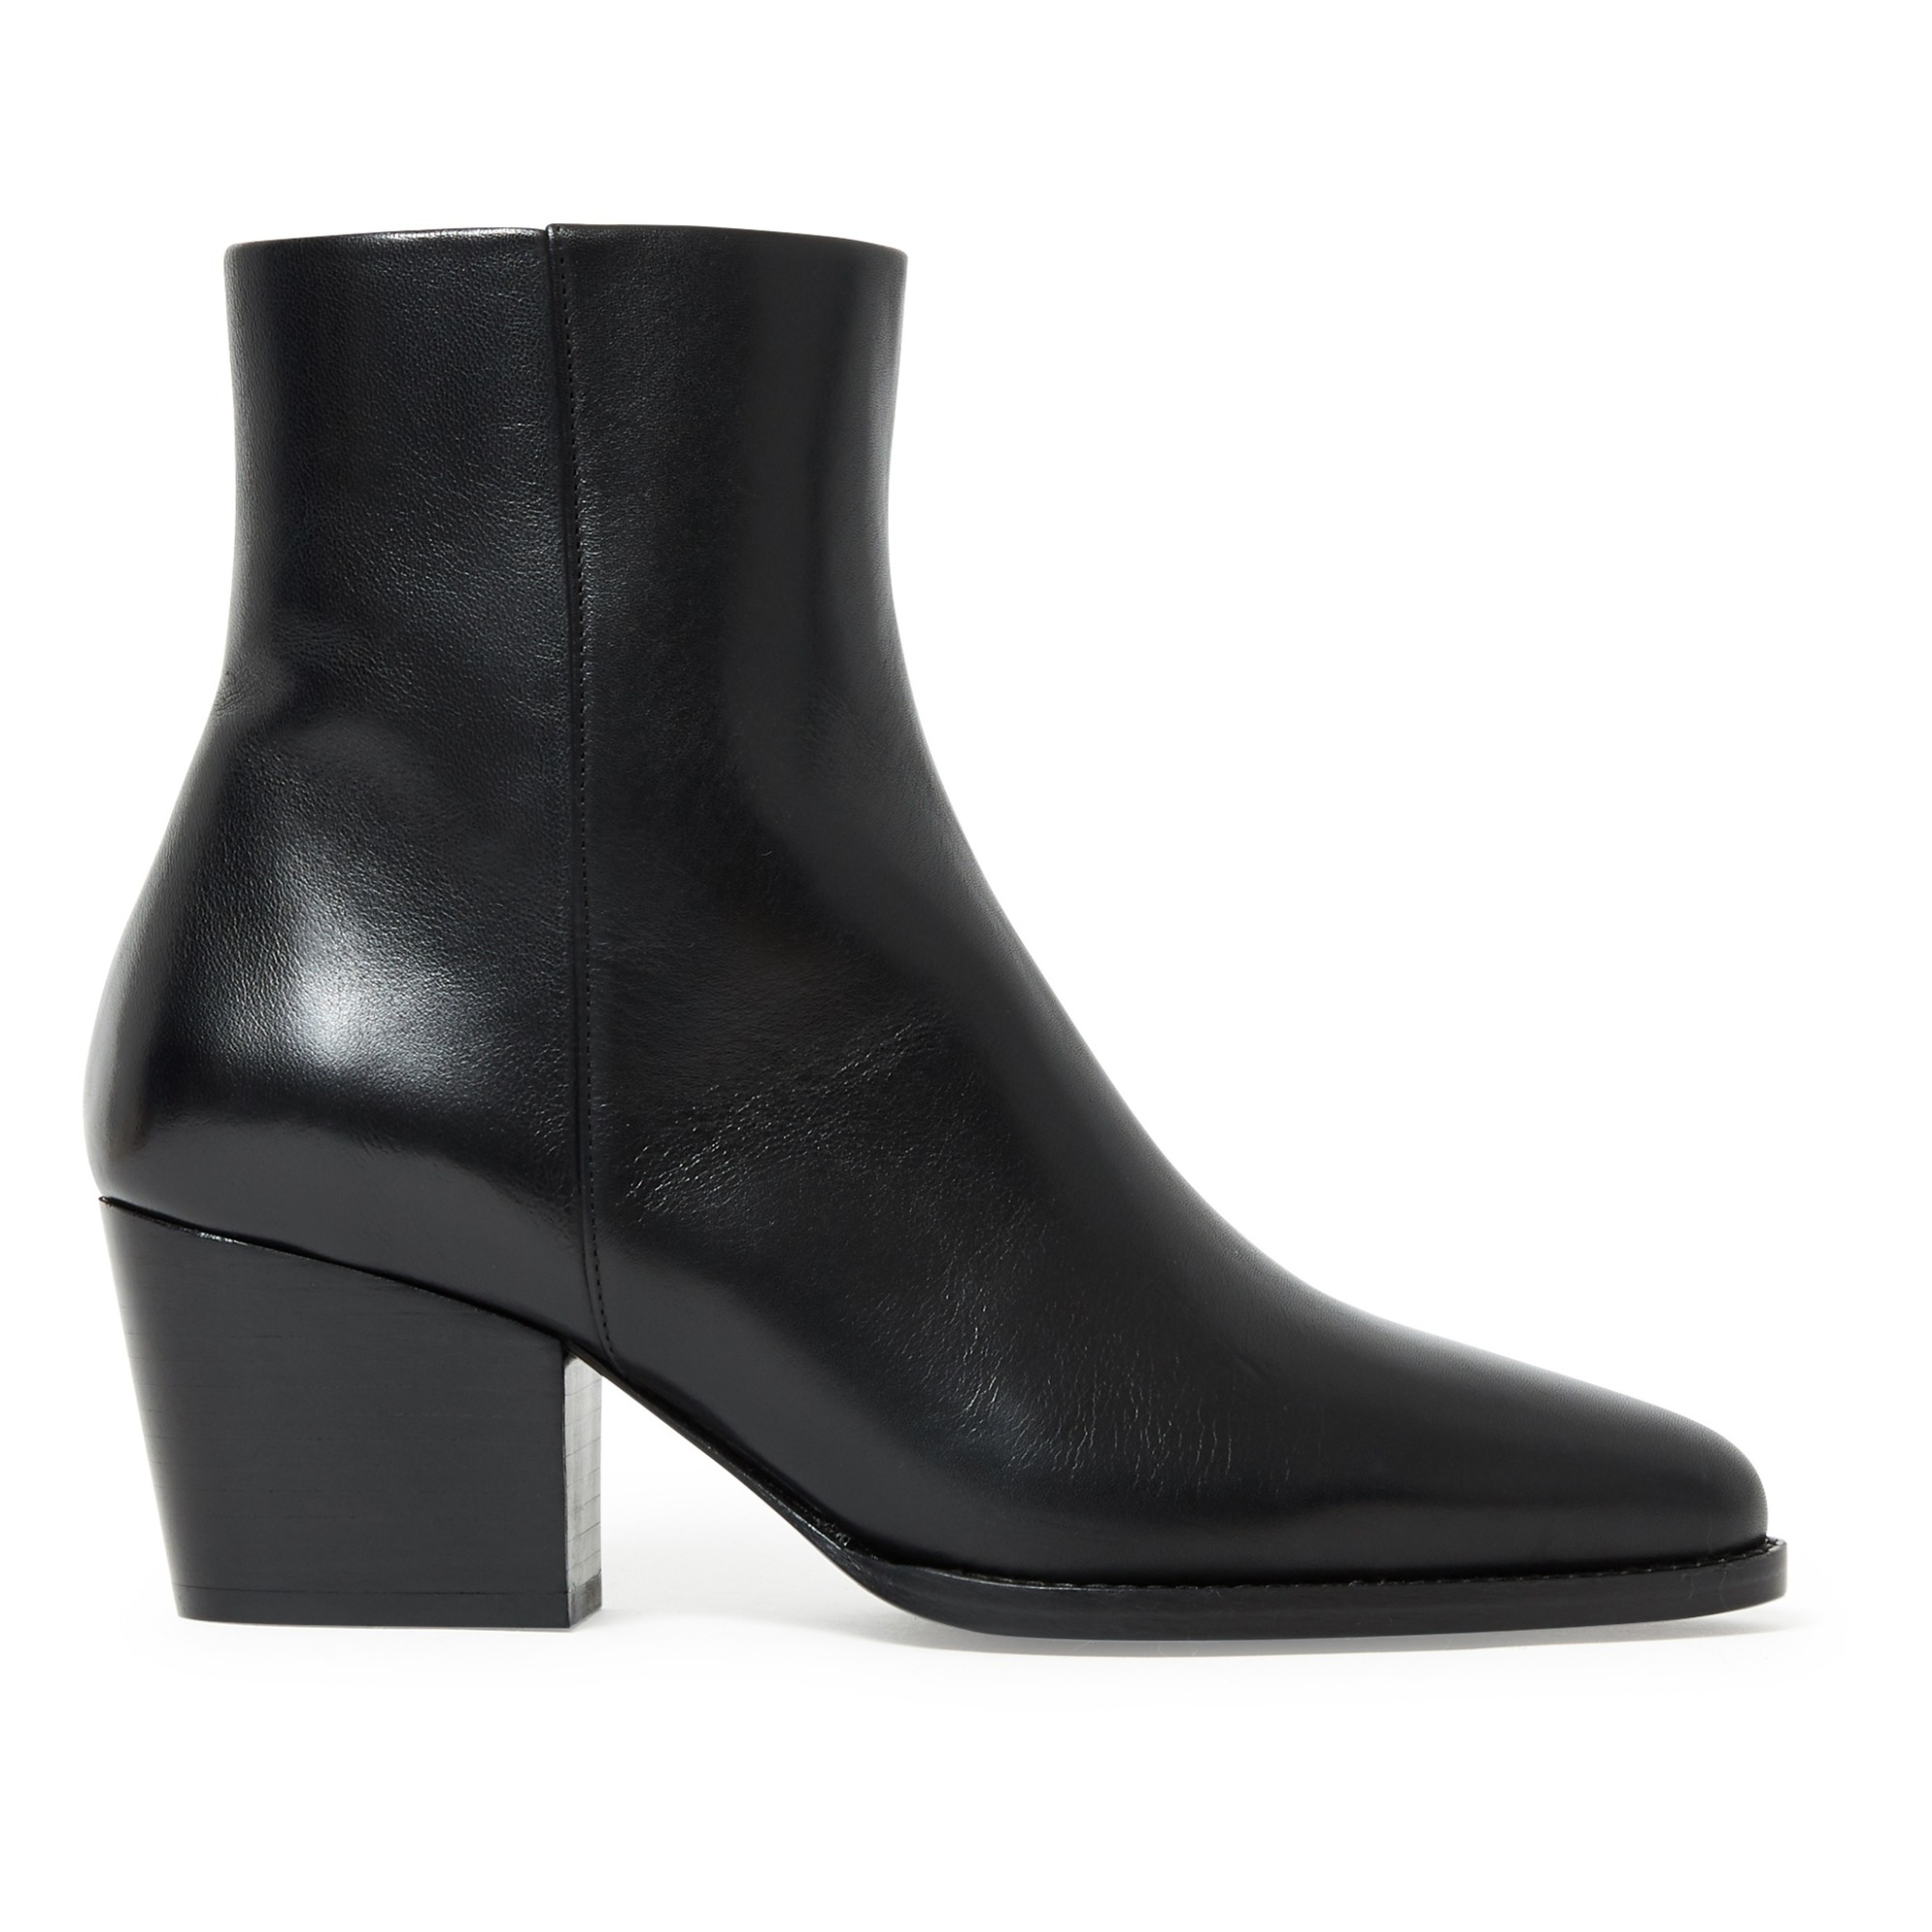 Nâ°700 Leather Ankle Boots